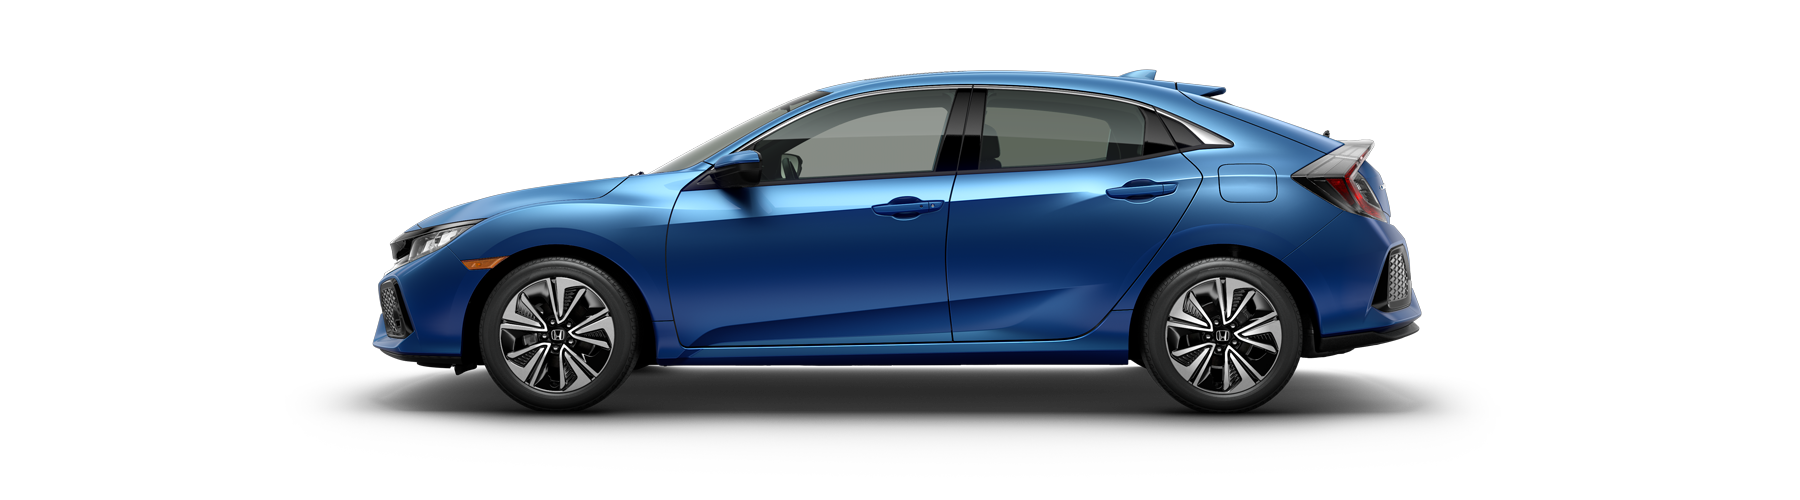 2017 honda civic hatchback capital region honda dealers